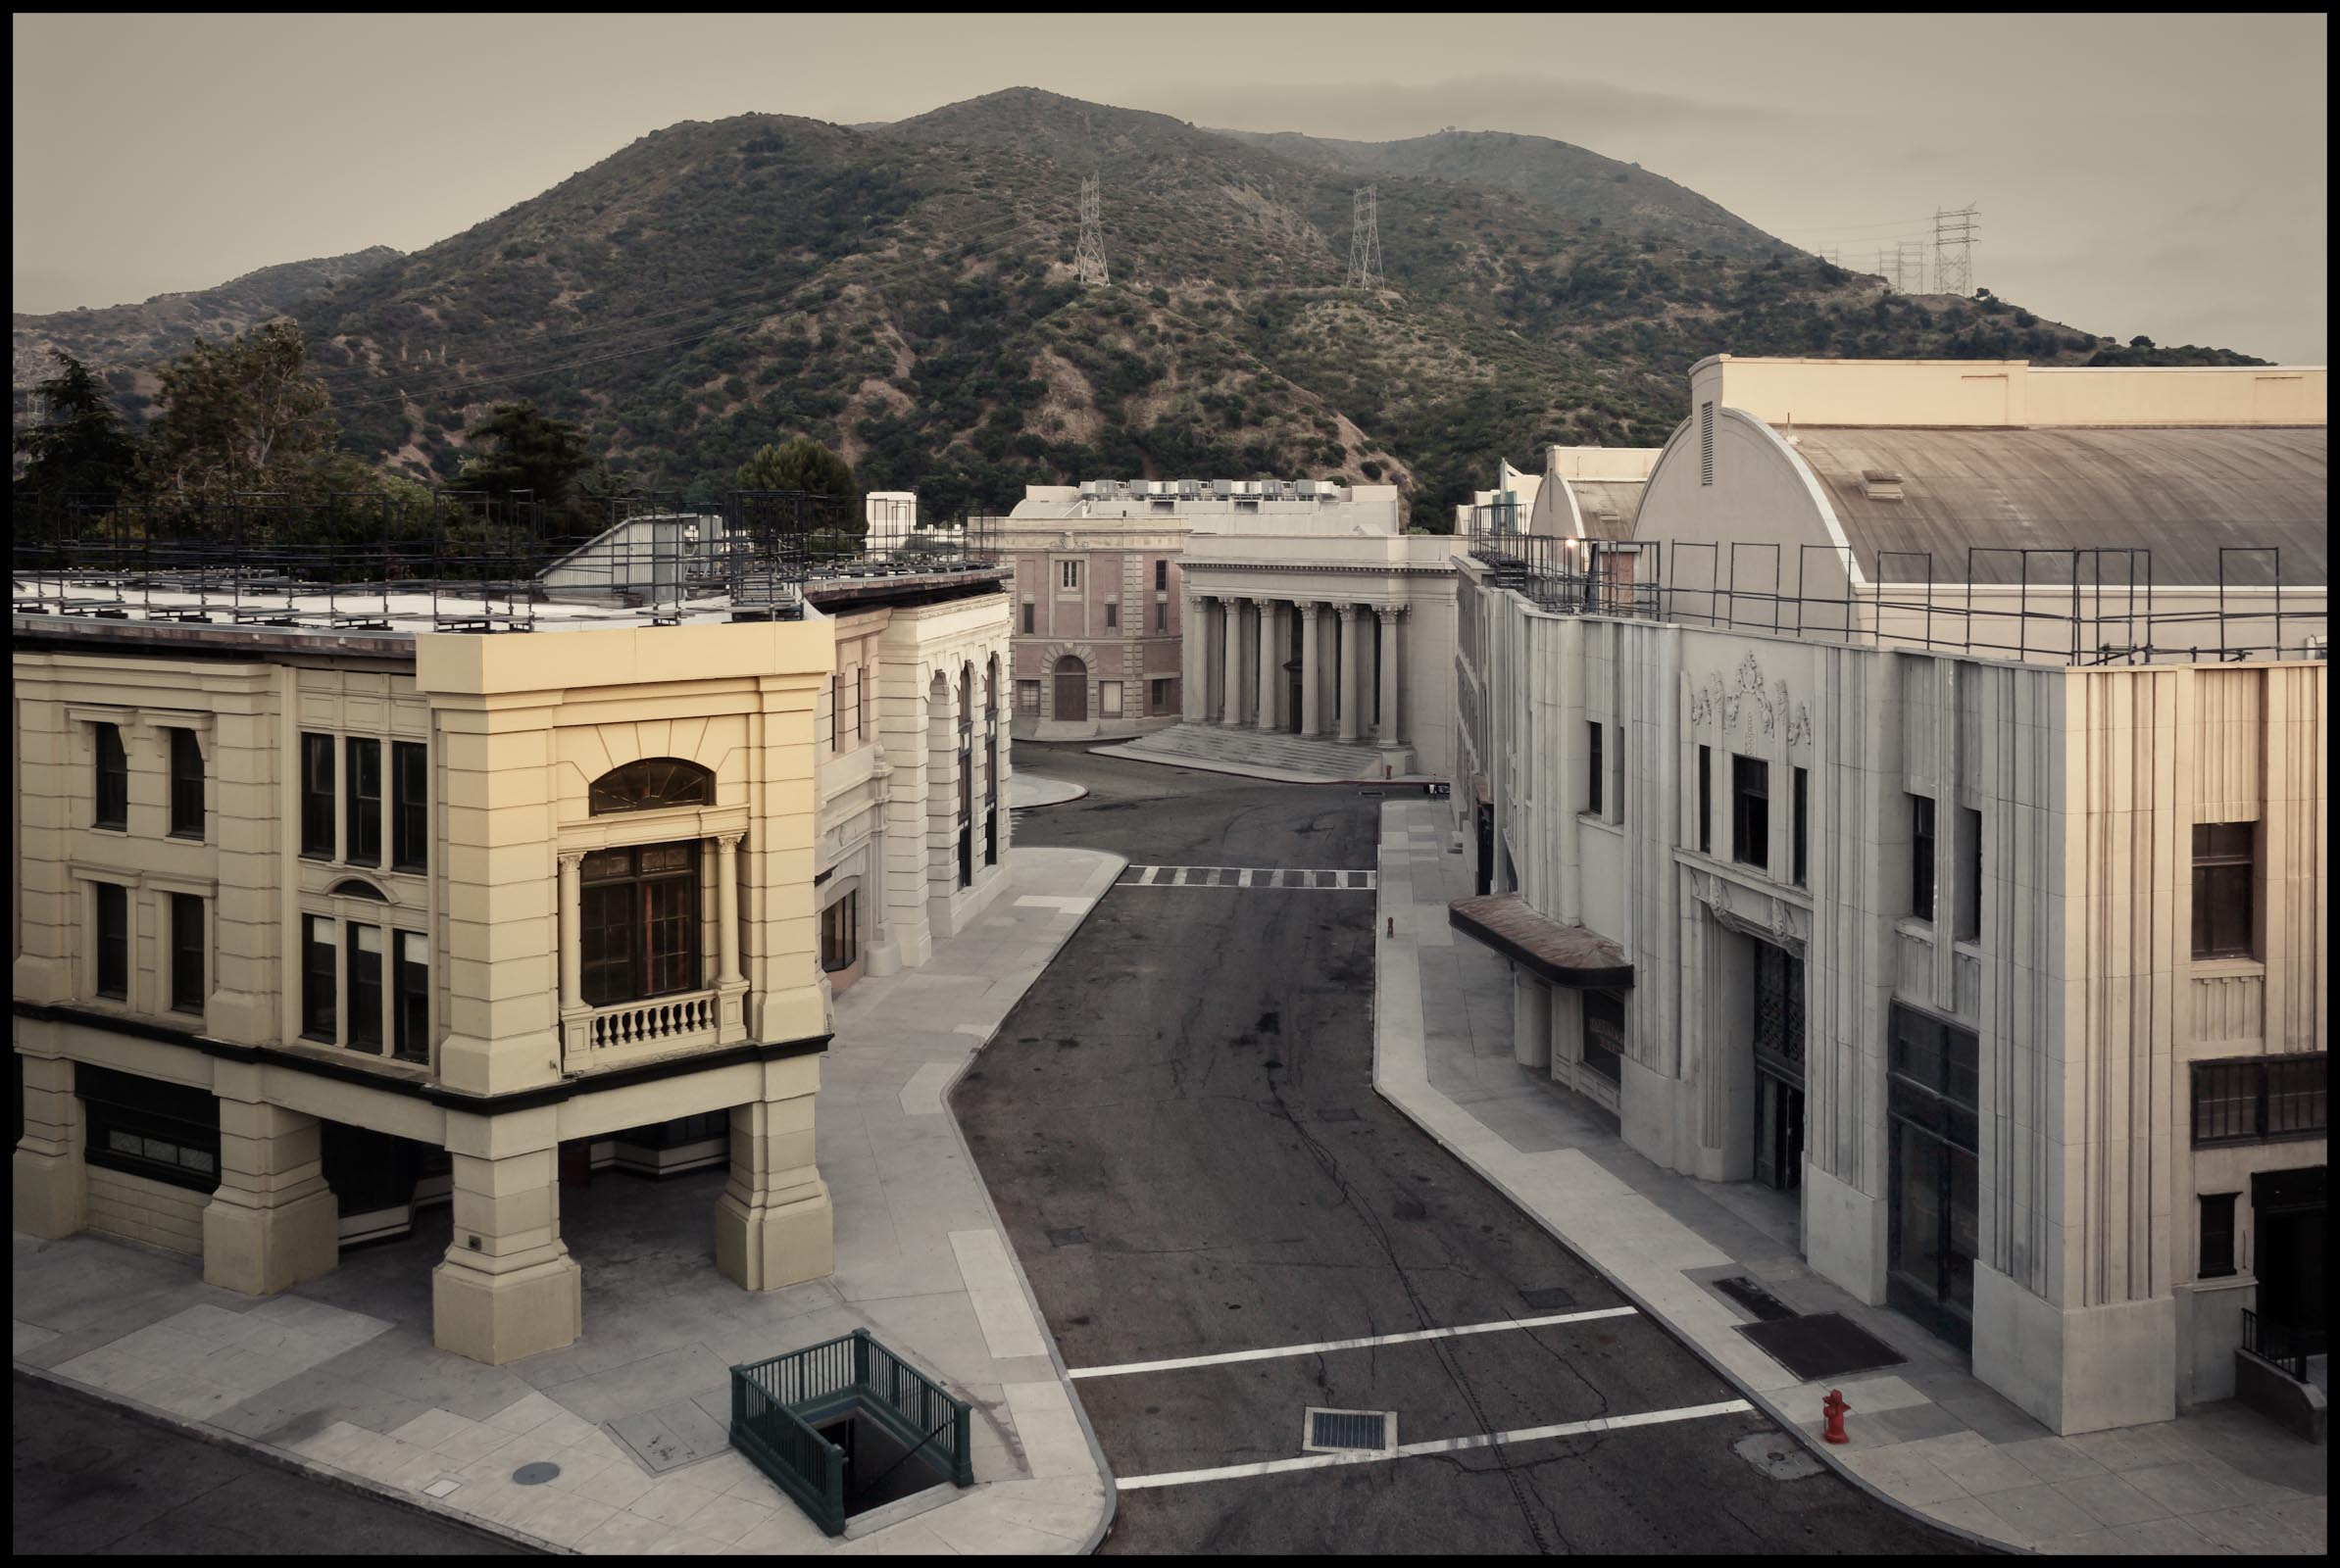 Warner Bros Studios, Overhead view of backlot at twilight - Burbank, CA - Los Angeles Magazine